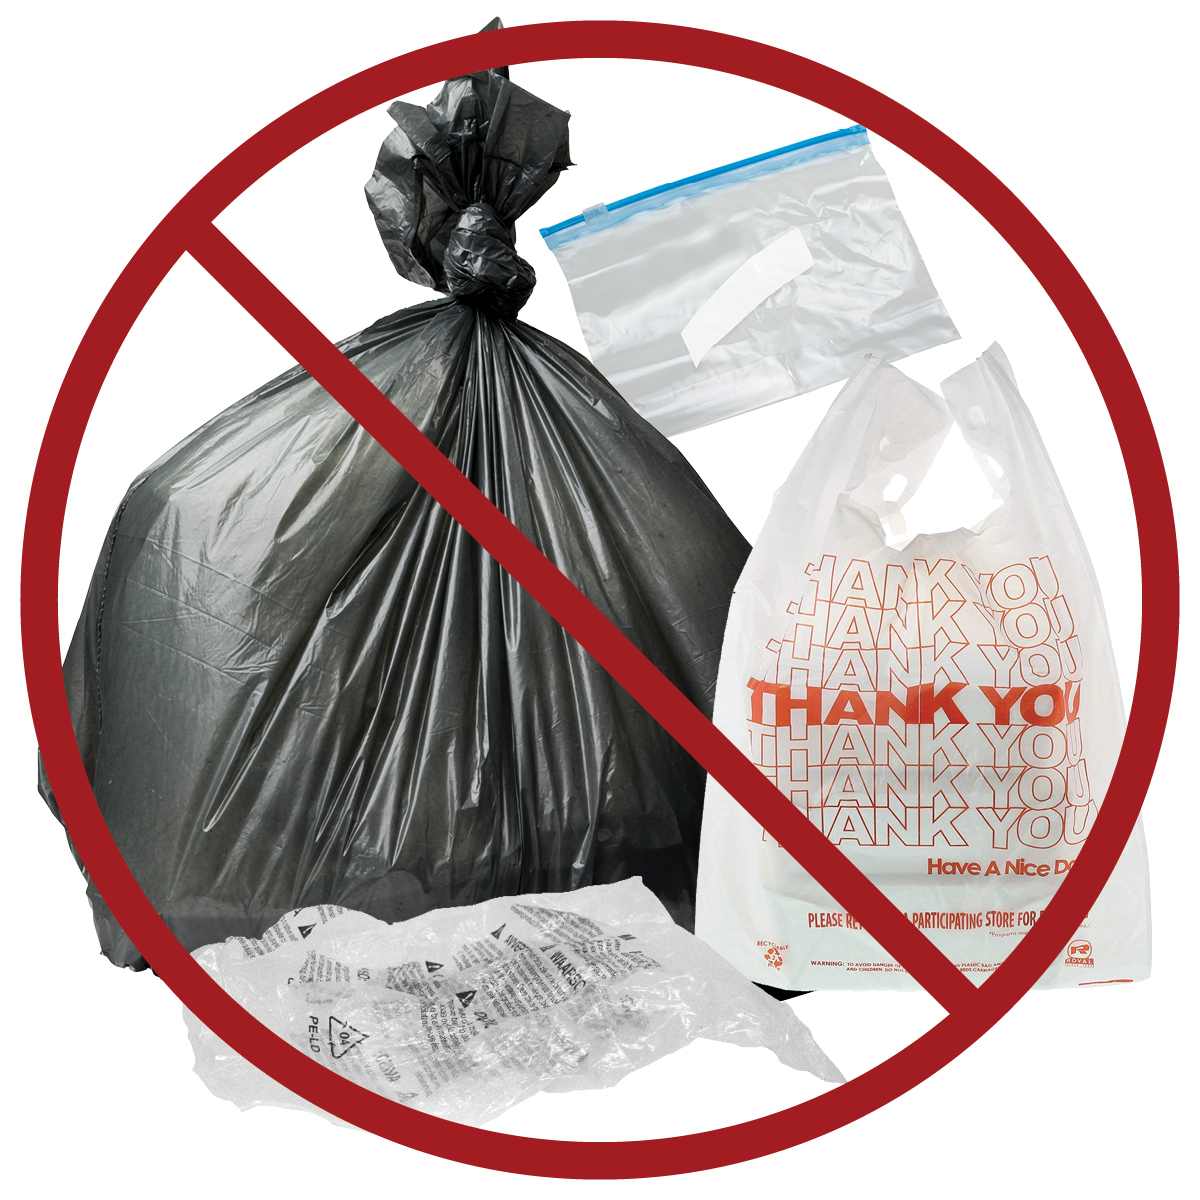 Plastic bags and film: keep out of blue cart